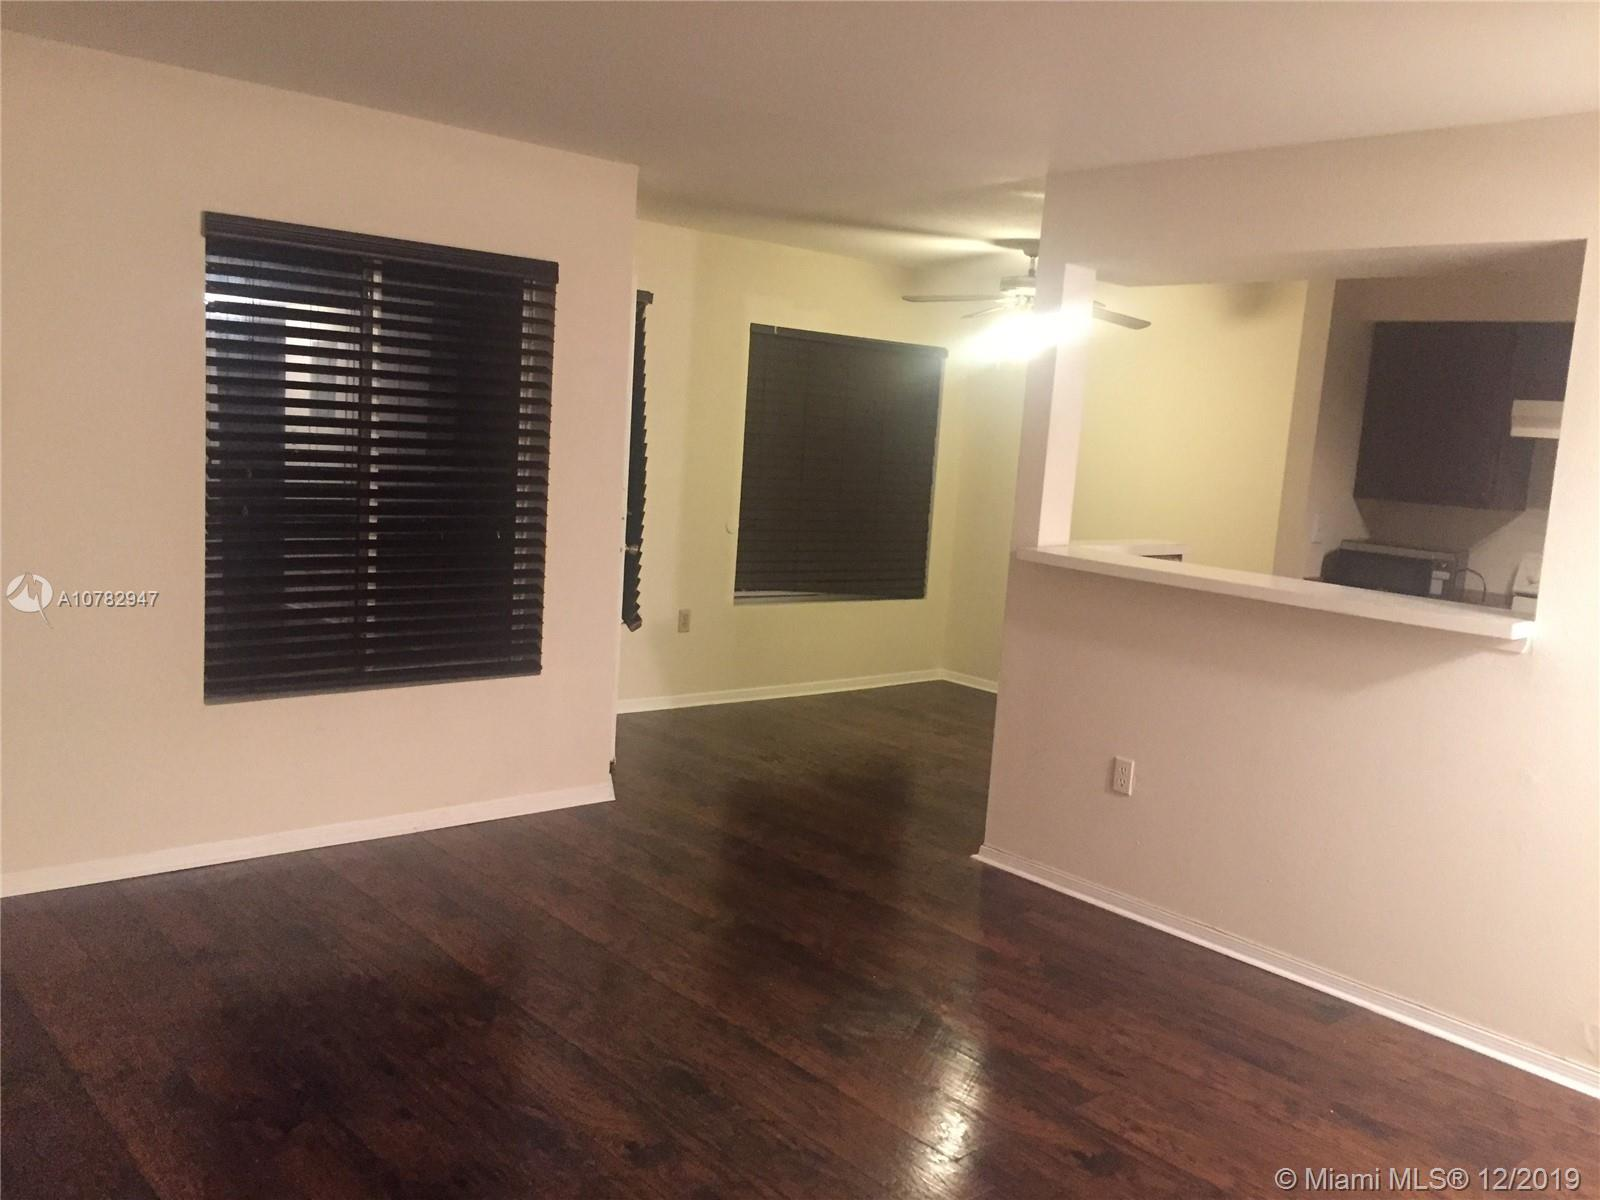 Great 1 Bed/ 1 Bath unit at Sailboat Pointe Condominium. Currently rented until June 30, 2020. Laminated wood floors throughout. Washer and dryer inside the unit.